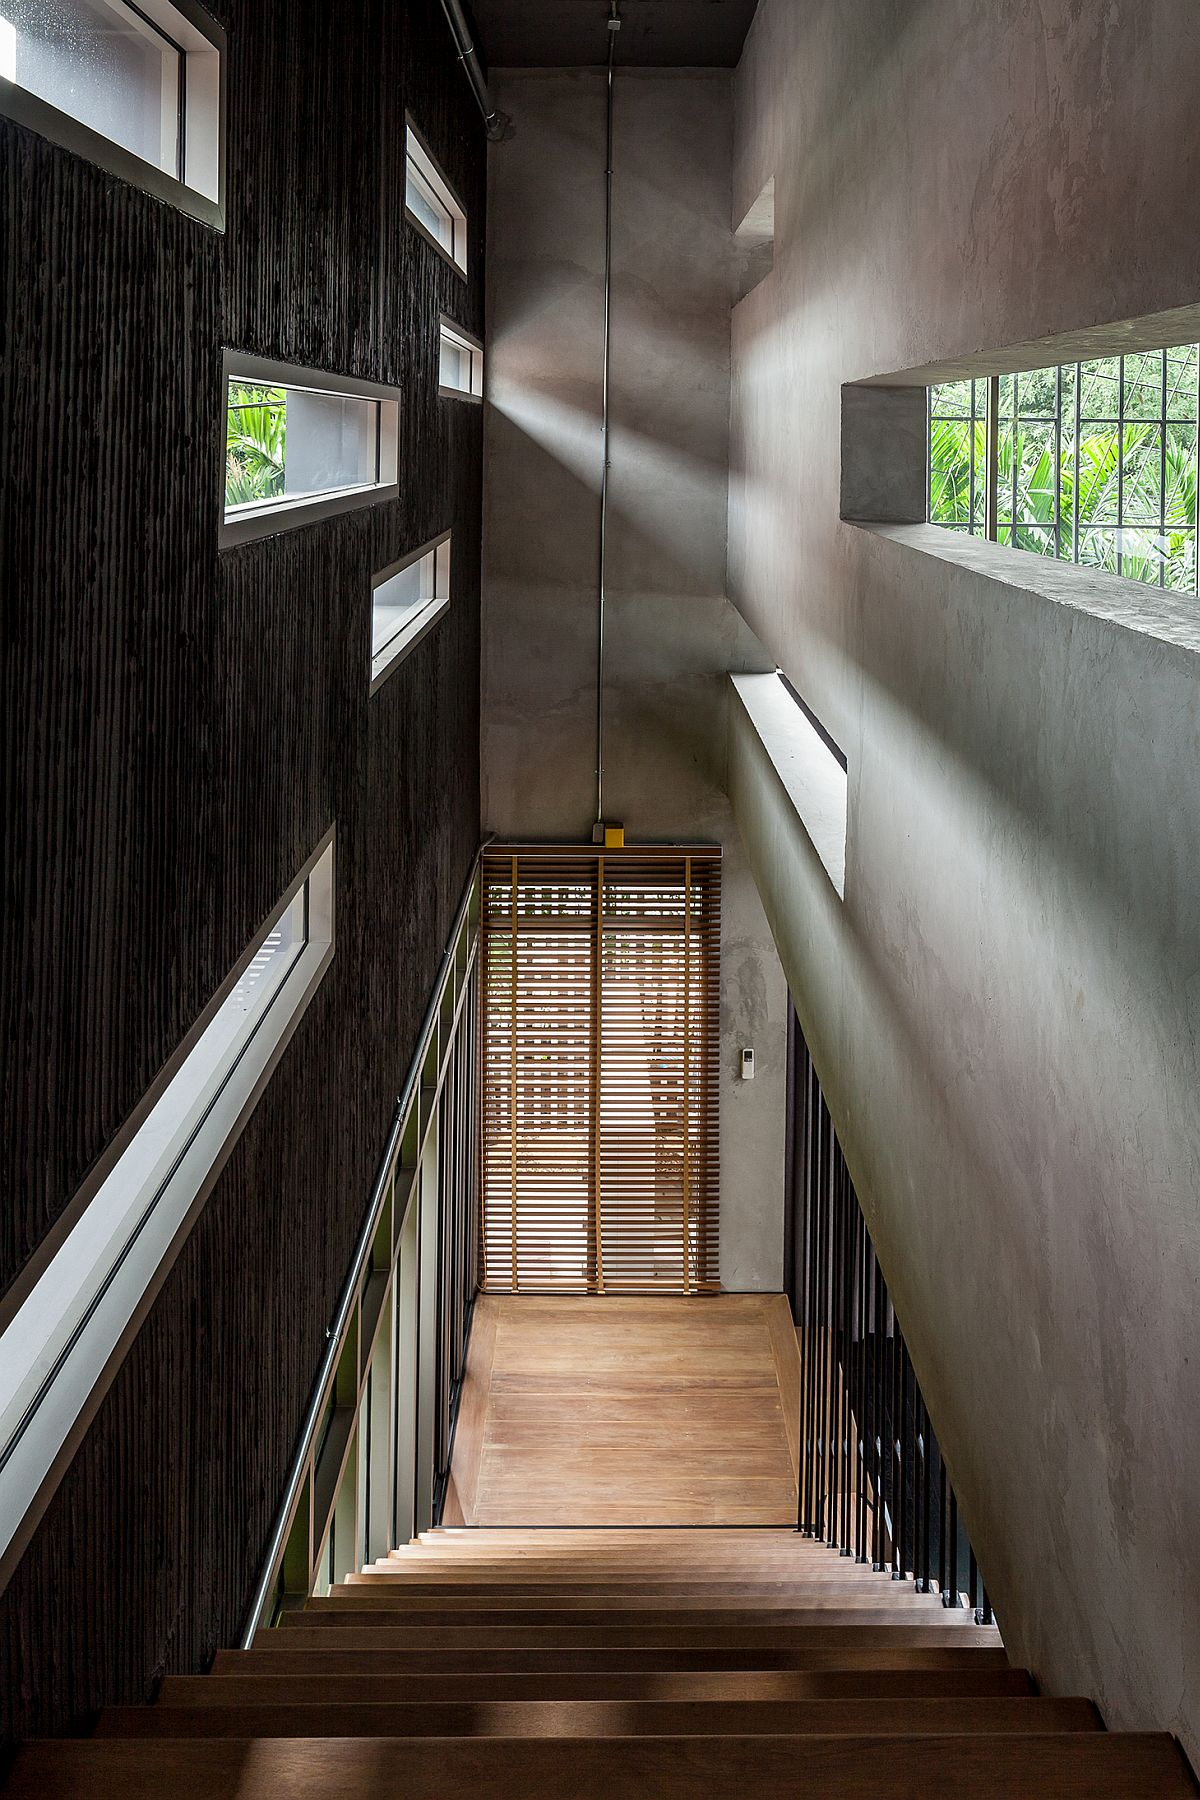 Staircase flanked by texturally two different walls fetaures little windows that bring in natural light